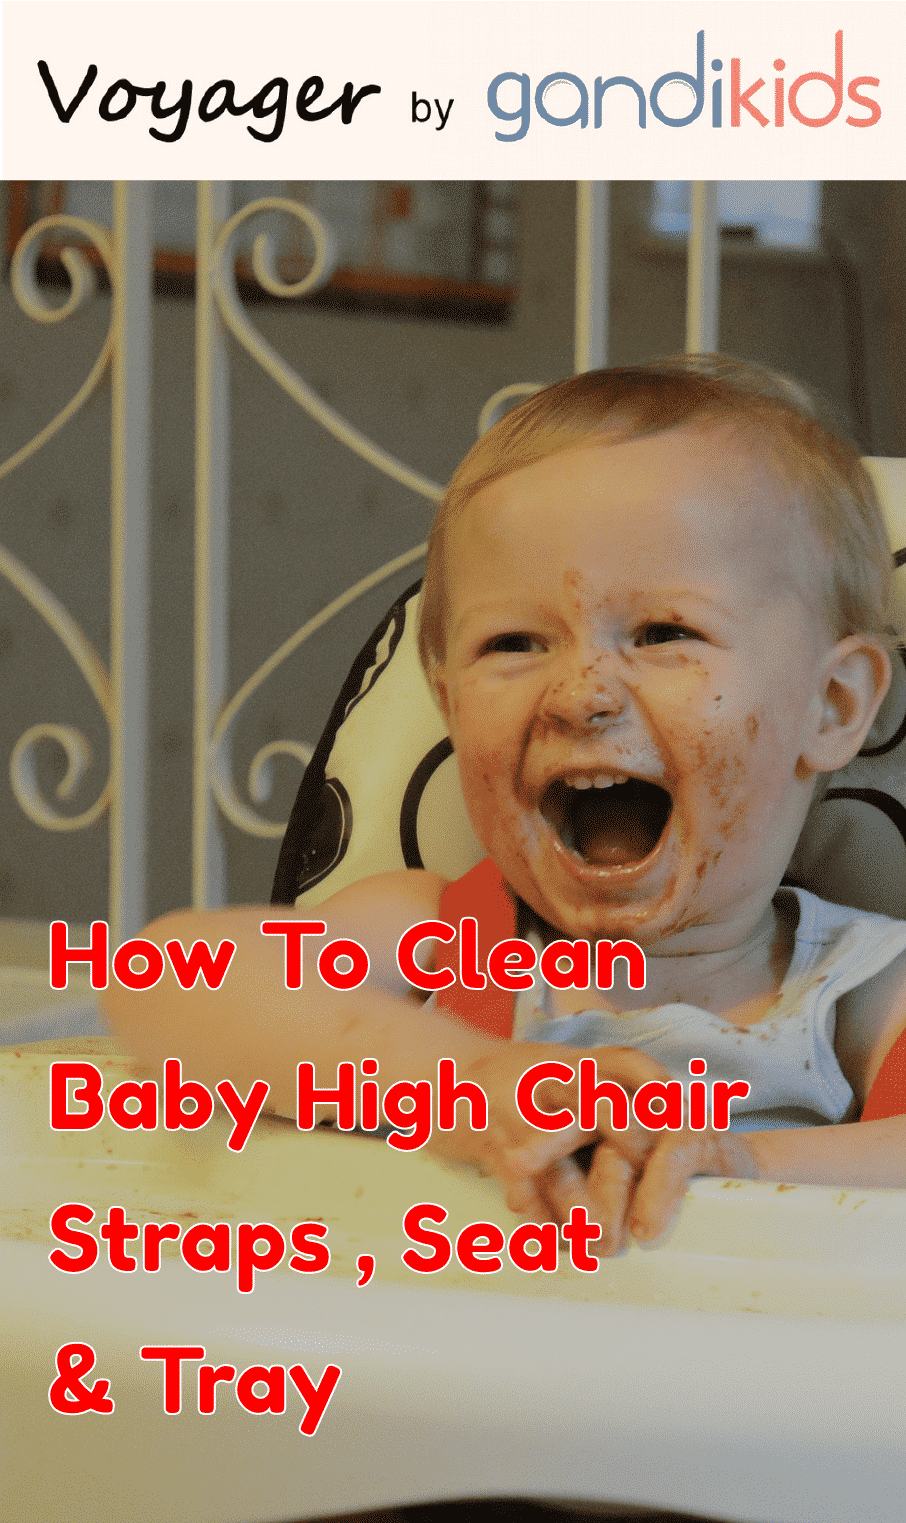 How to clean baby high chair